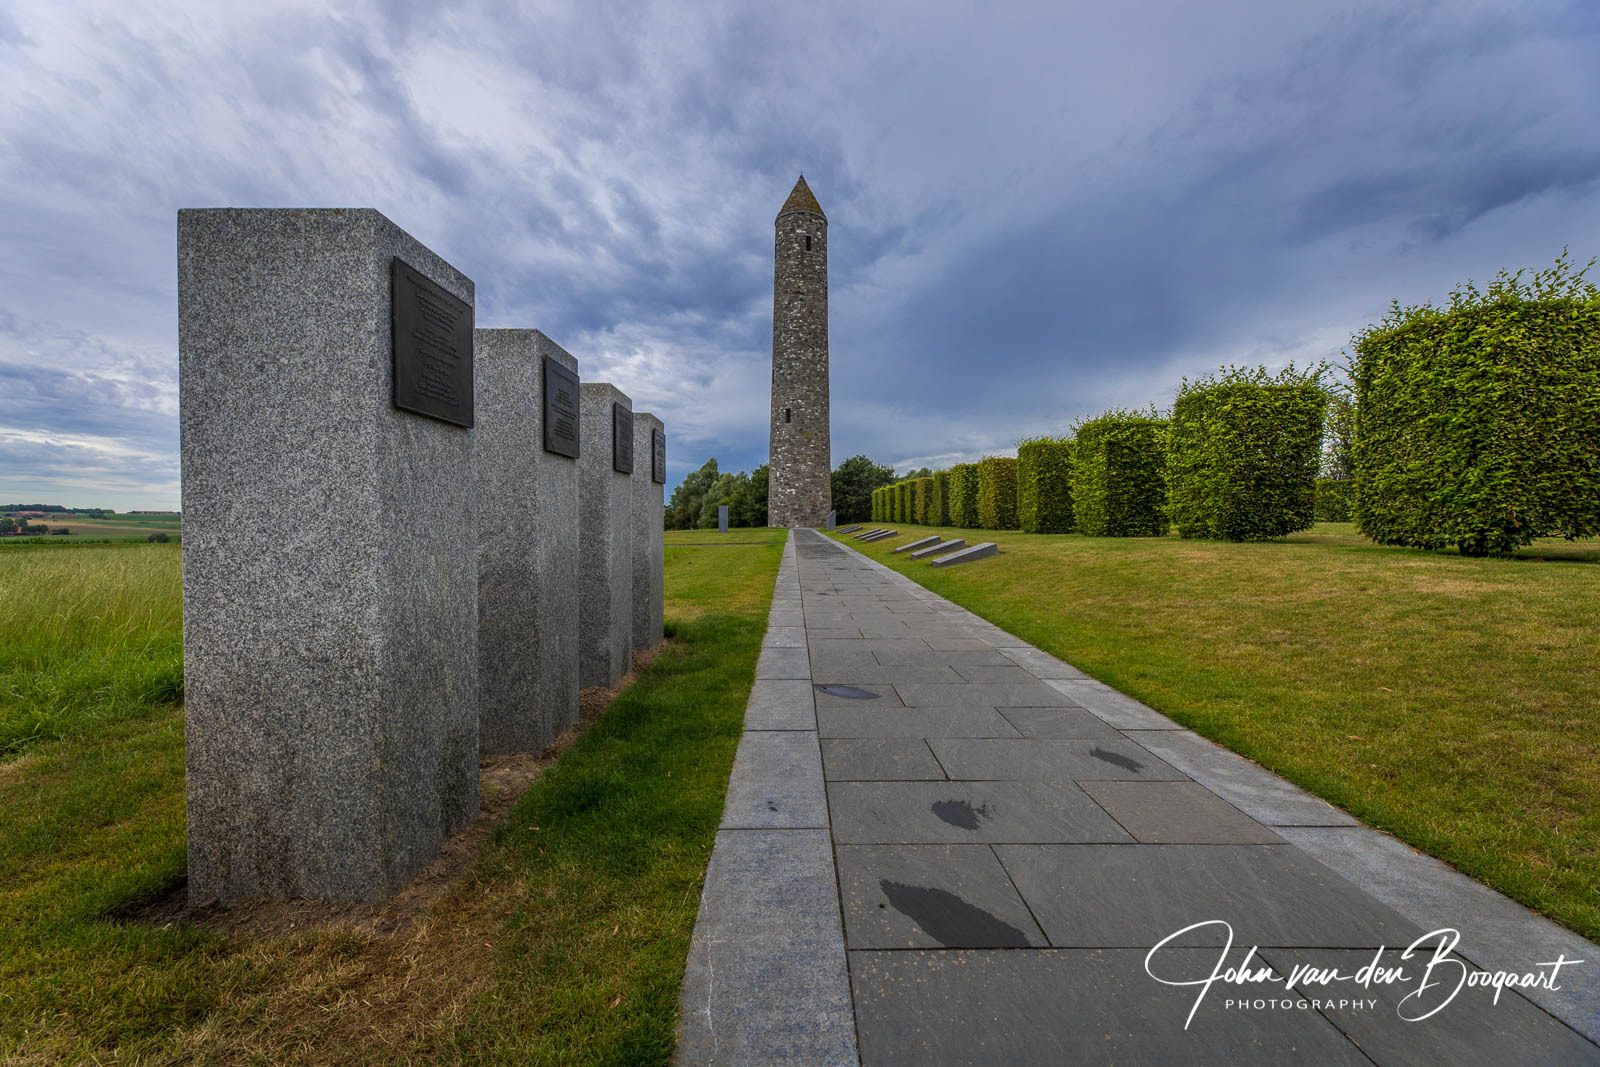 Iers Vredesmonument